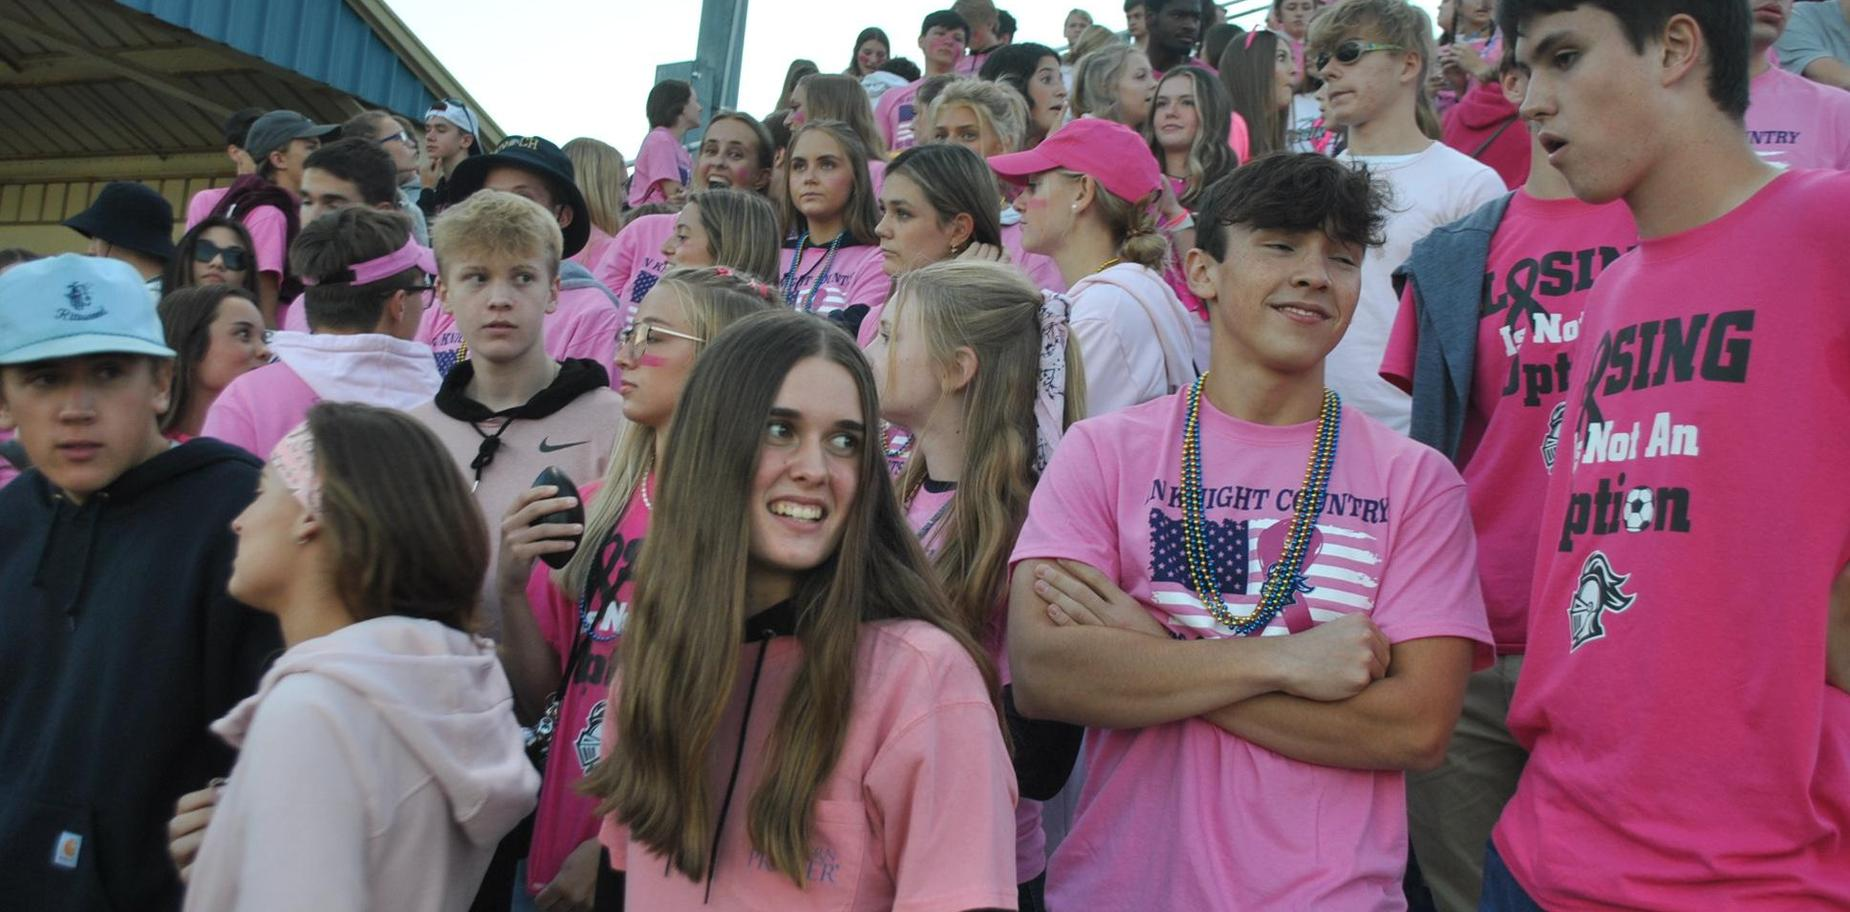 Students in student section at football game